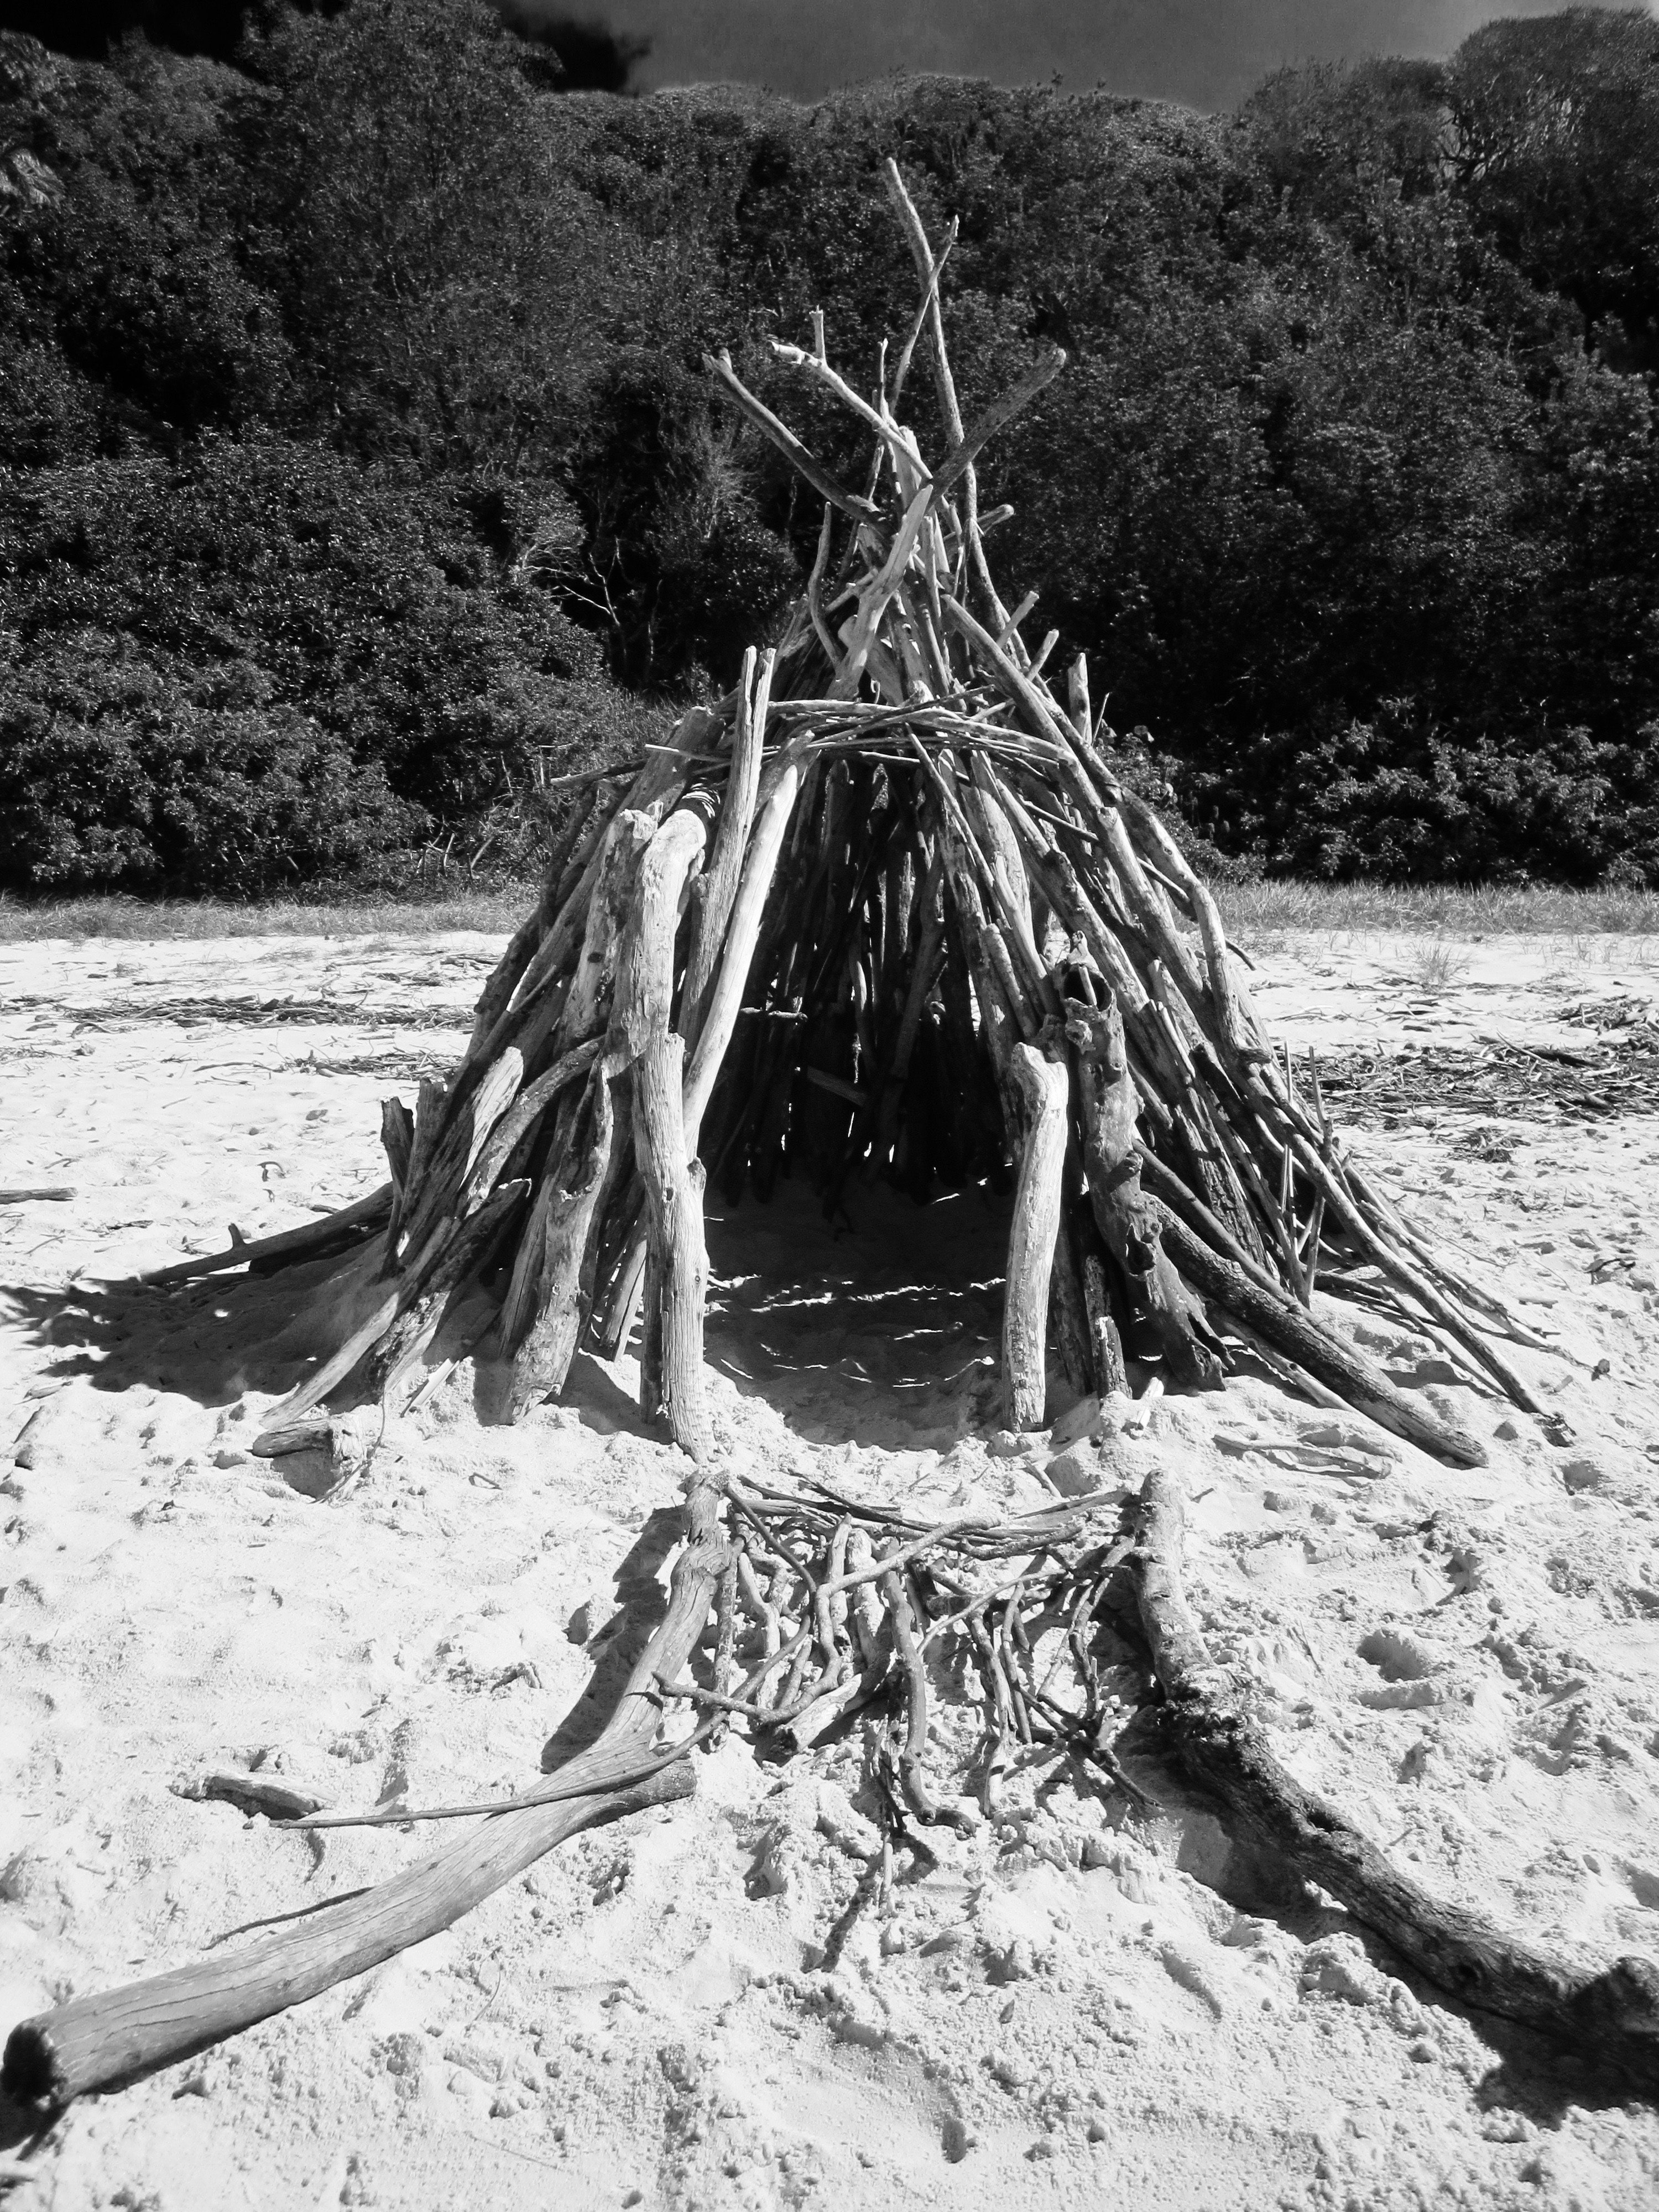 Twig Tent on Seashore, Adventure, Sand, Twigs, Trees, HQ Photo